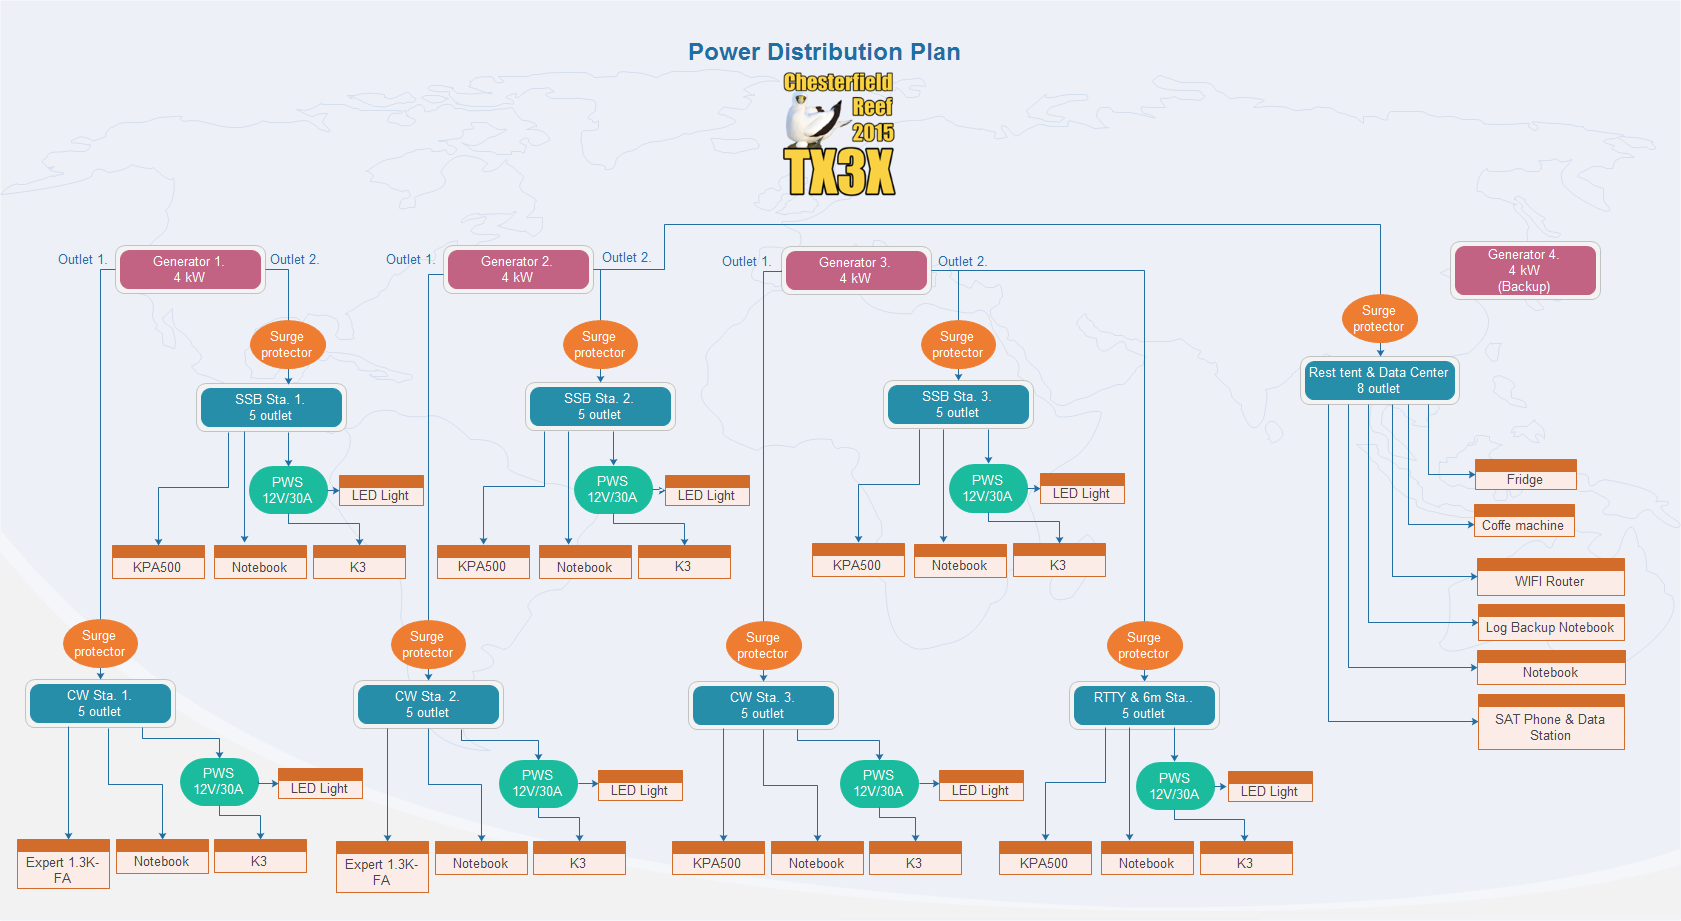 Power Distribution plan